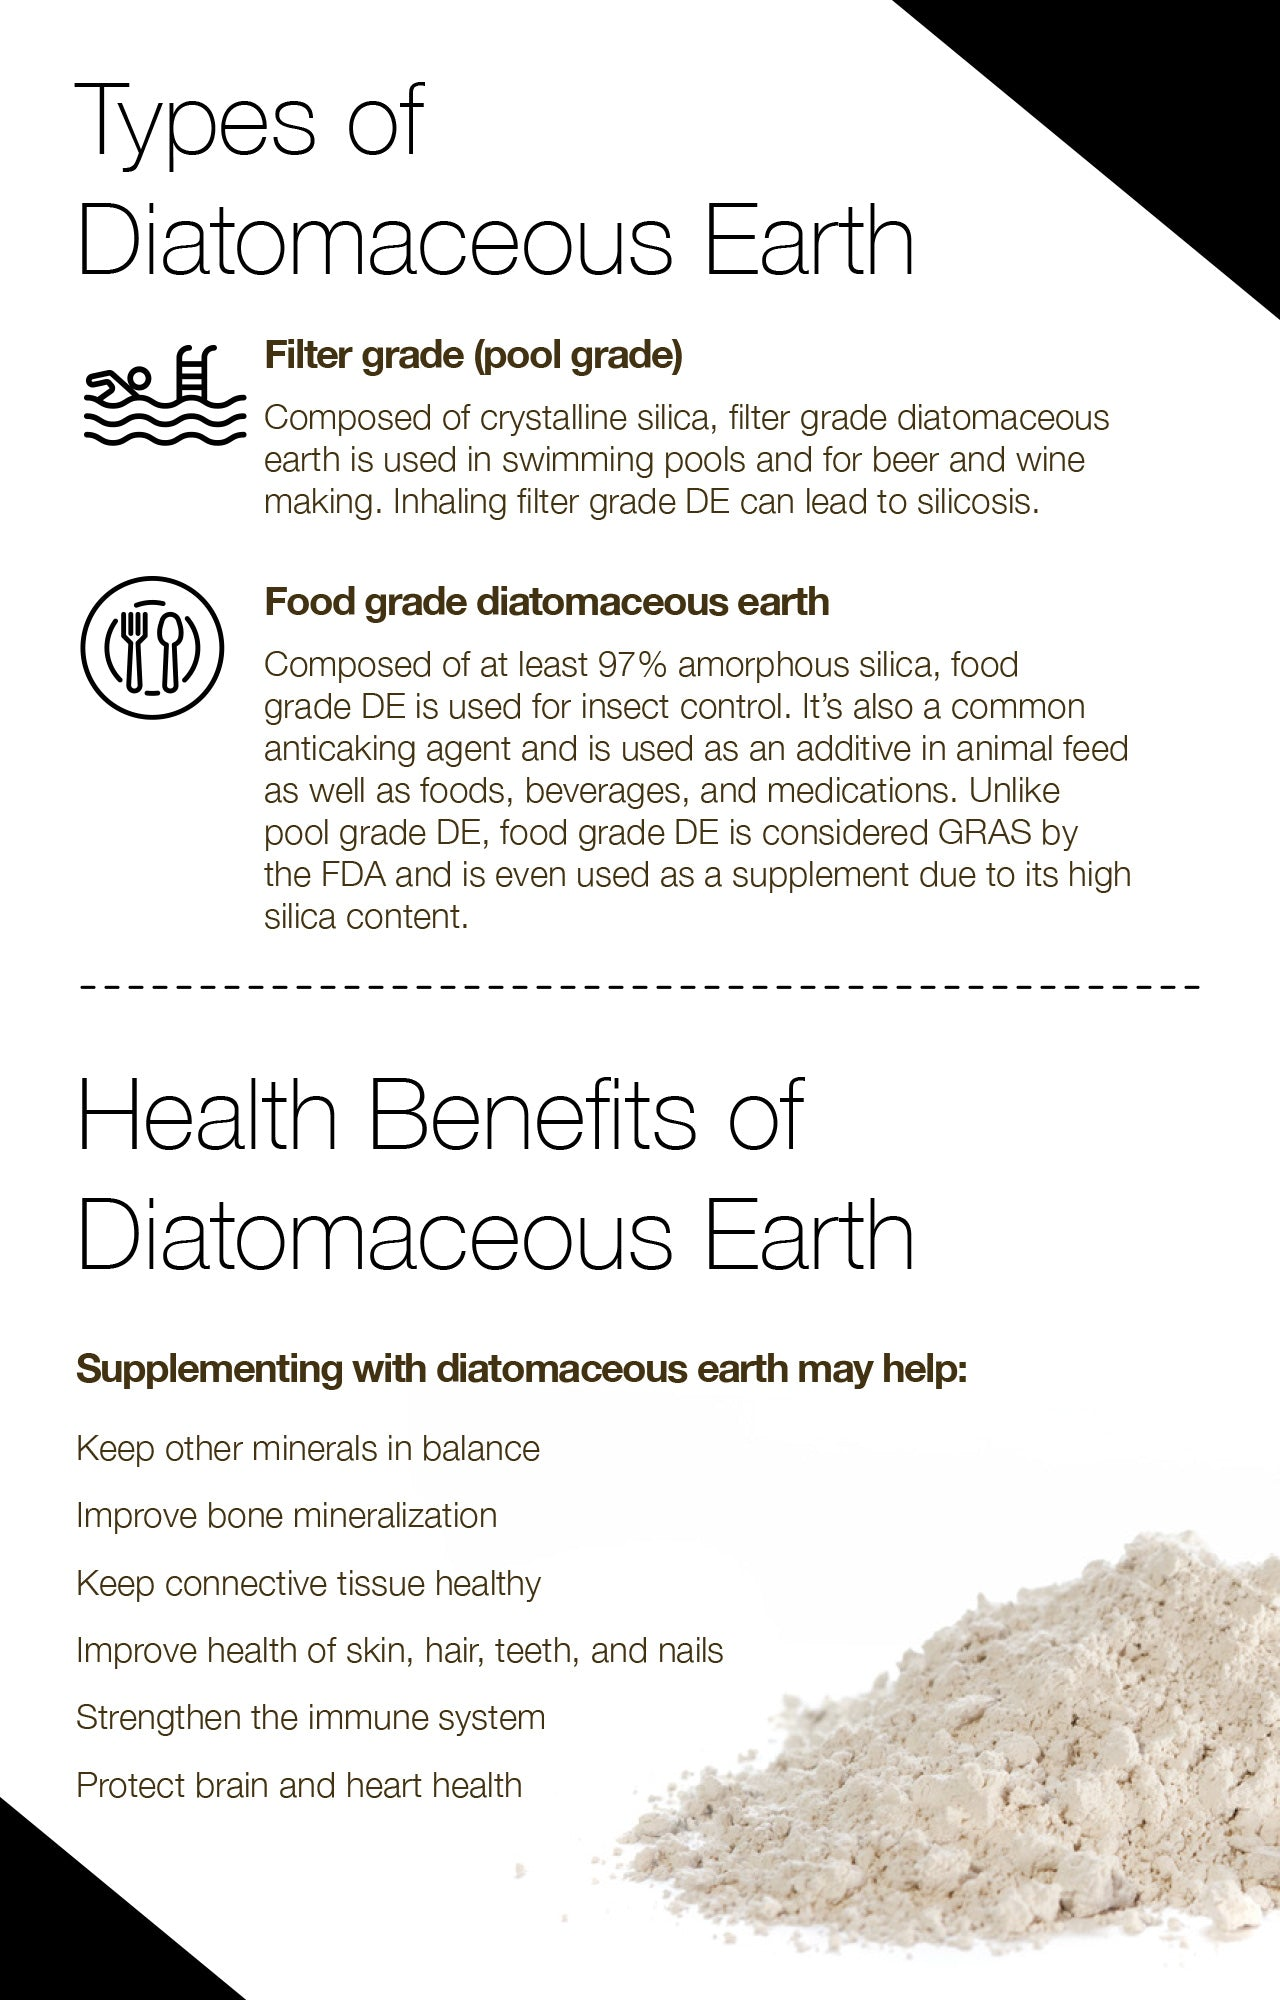 Types of Diatomaceous Earth